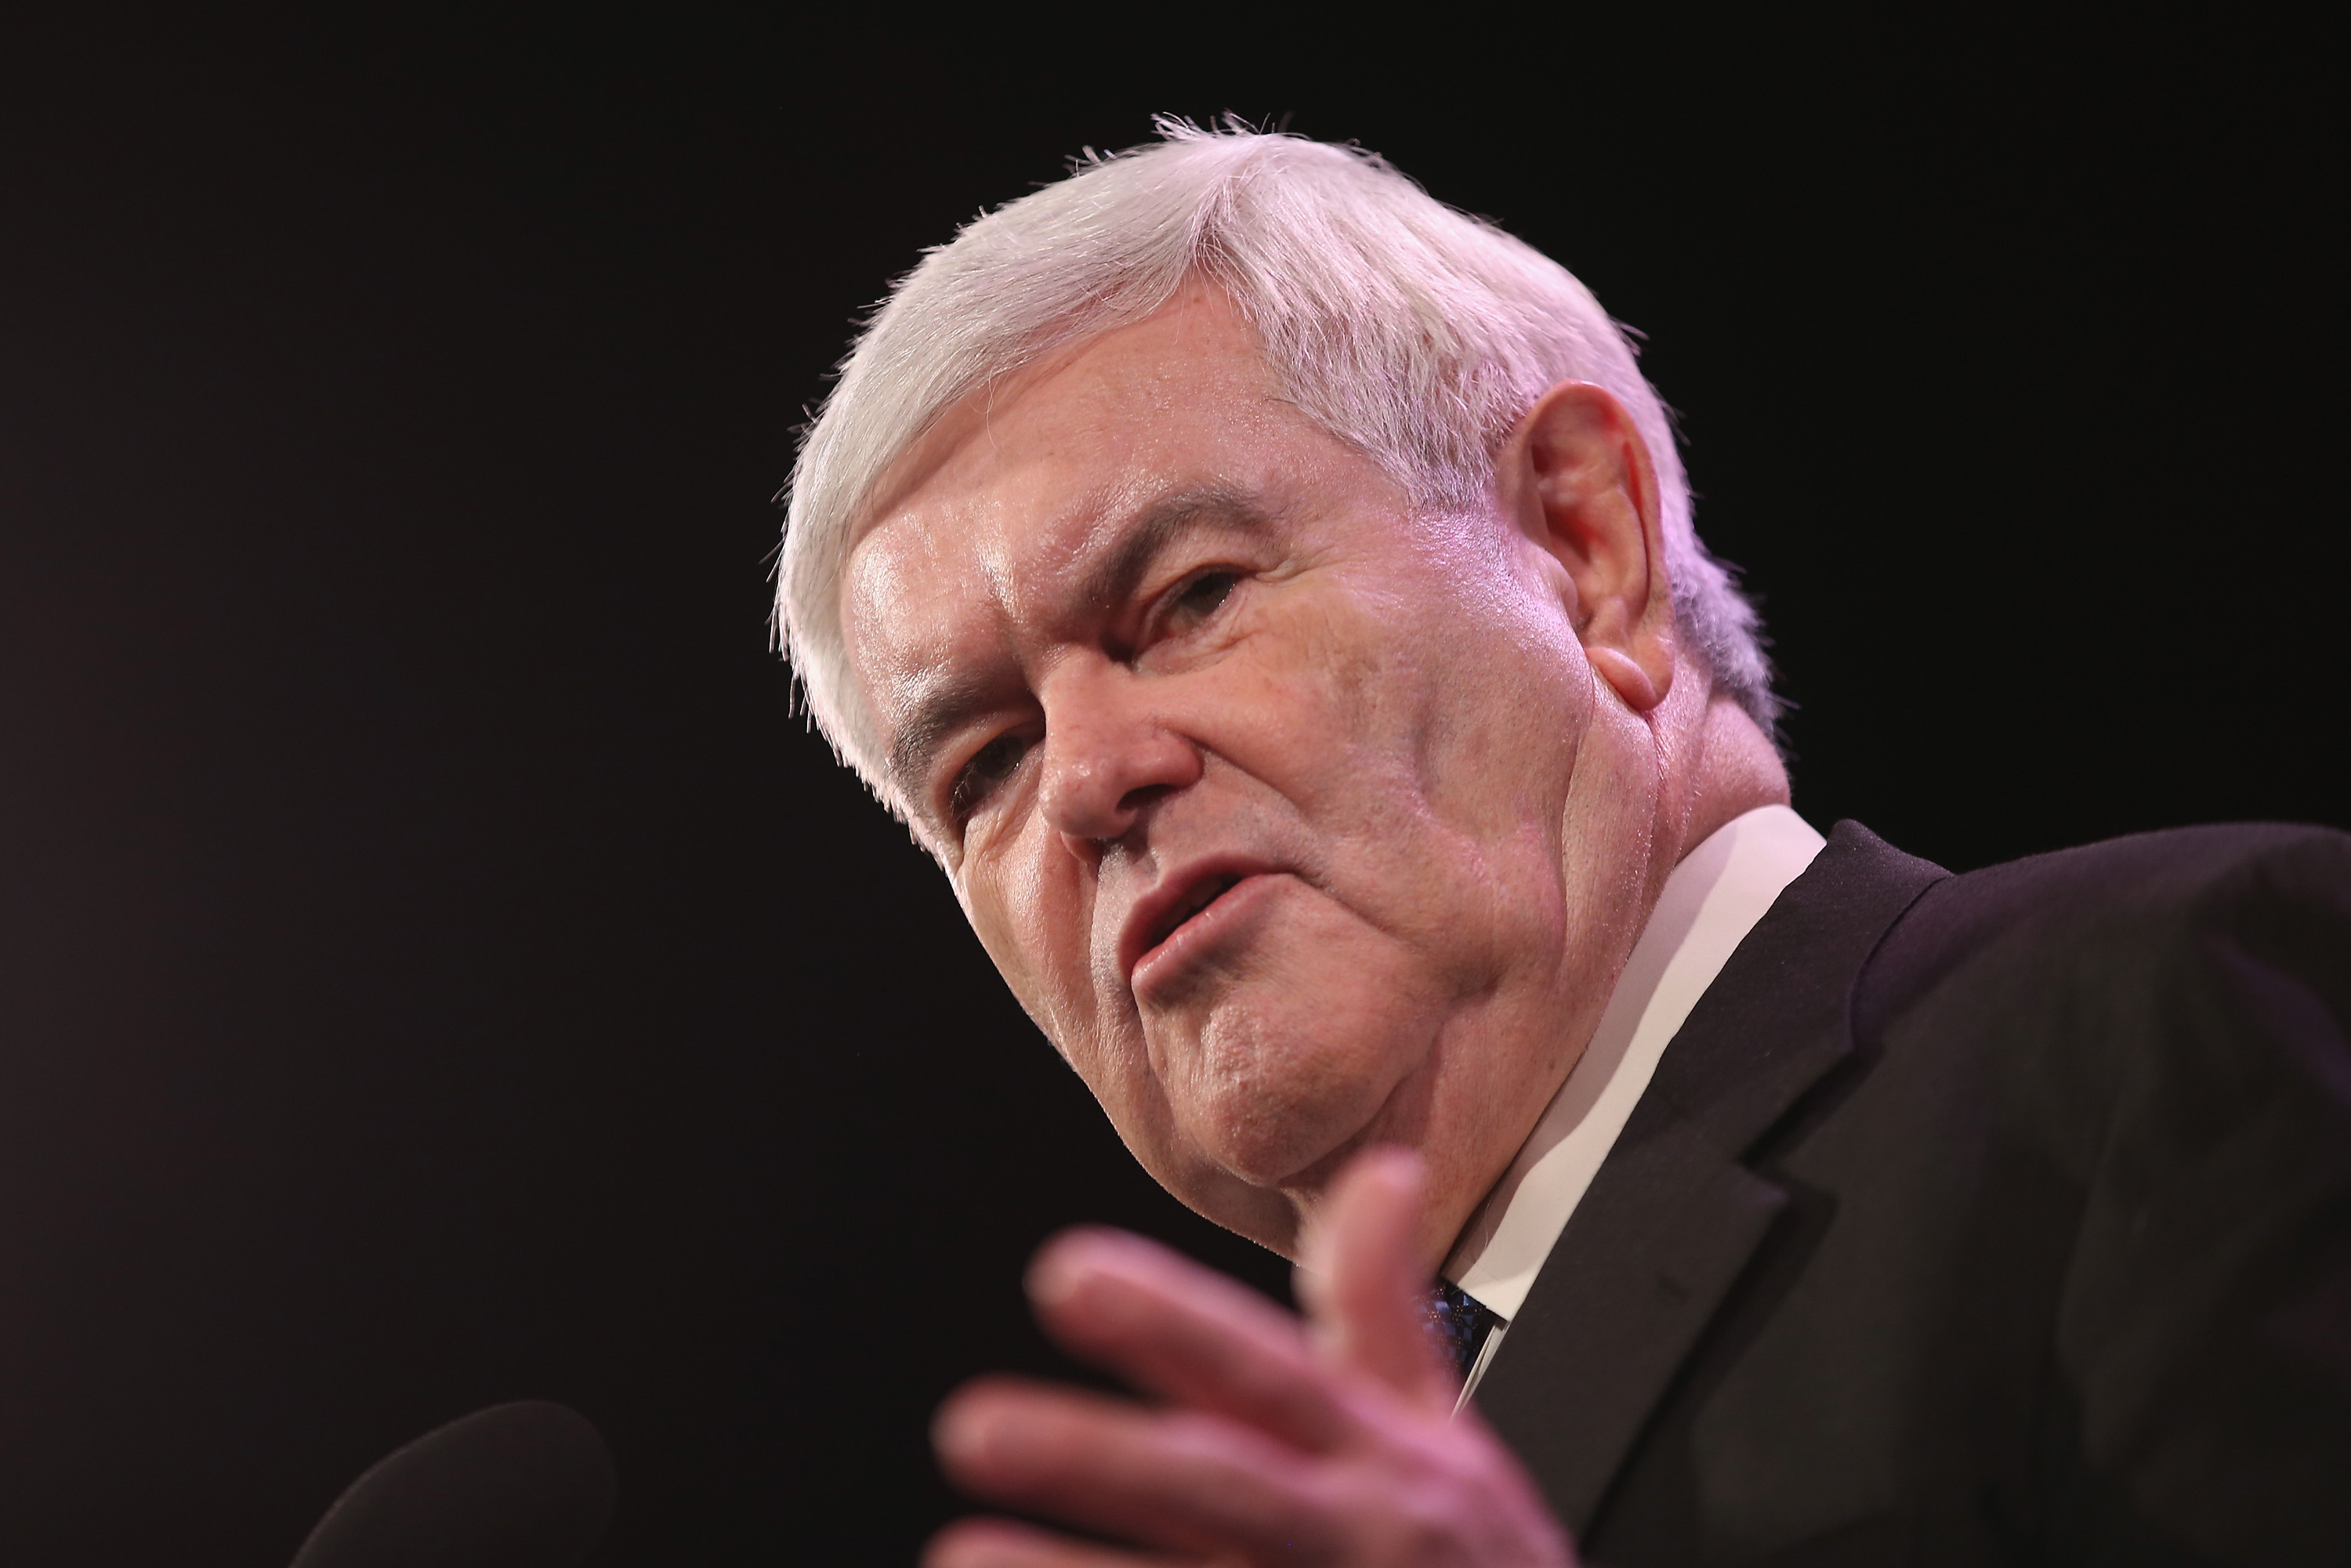 Former Speaker of the U.S. House of Representatives Newt Gingrich speaks to guests at the Iowa Freedom Summit on January 24, 2015 in Des Moines, Iowa.